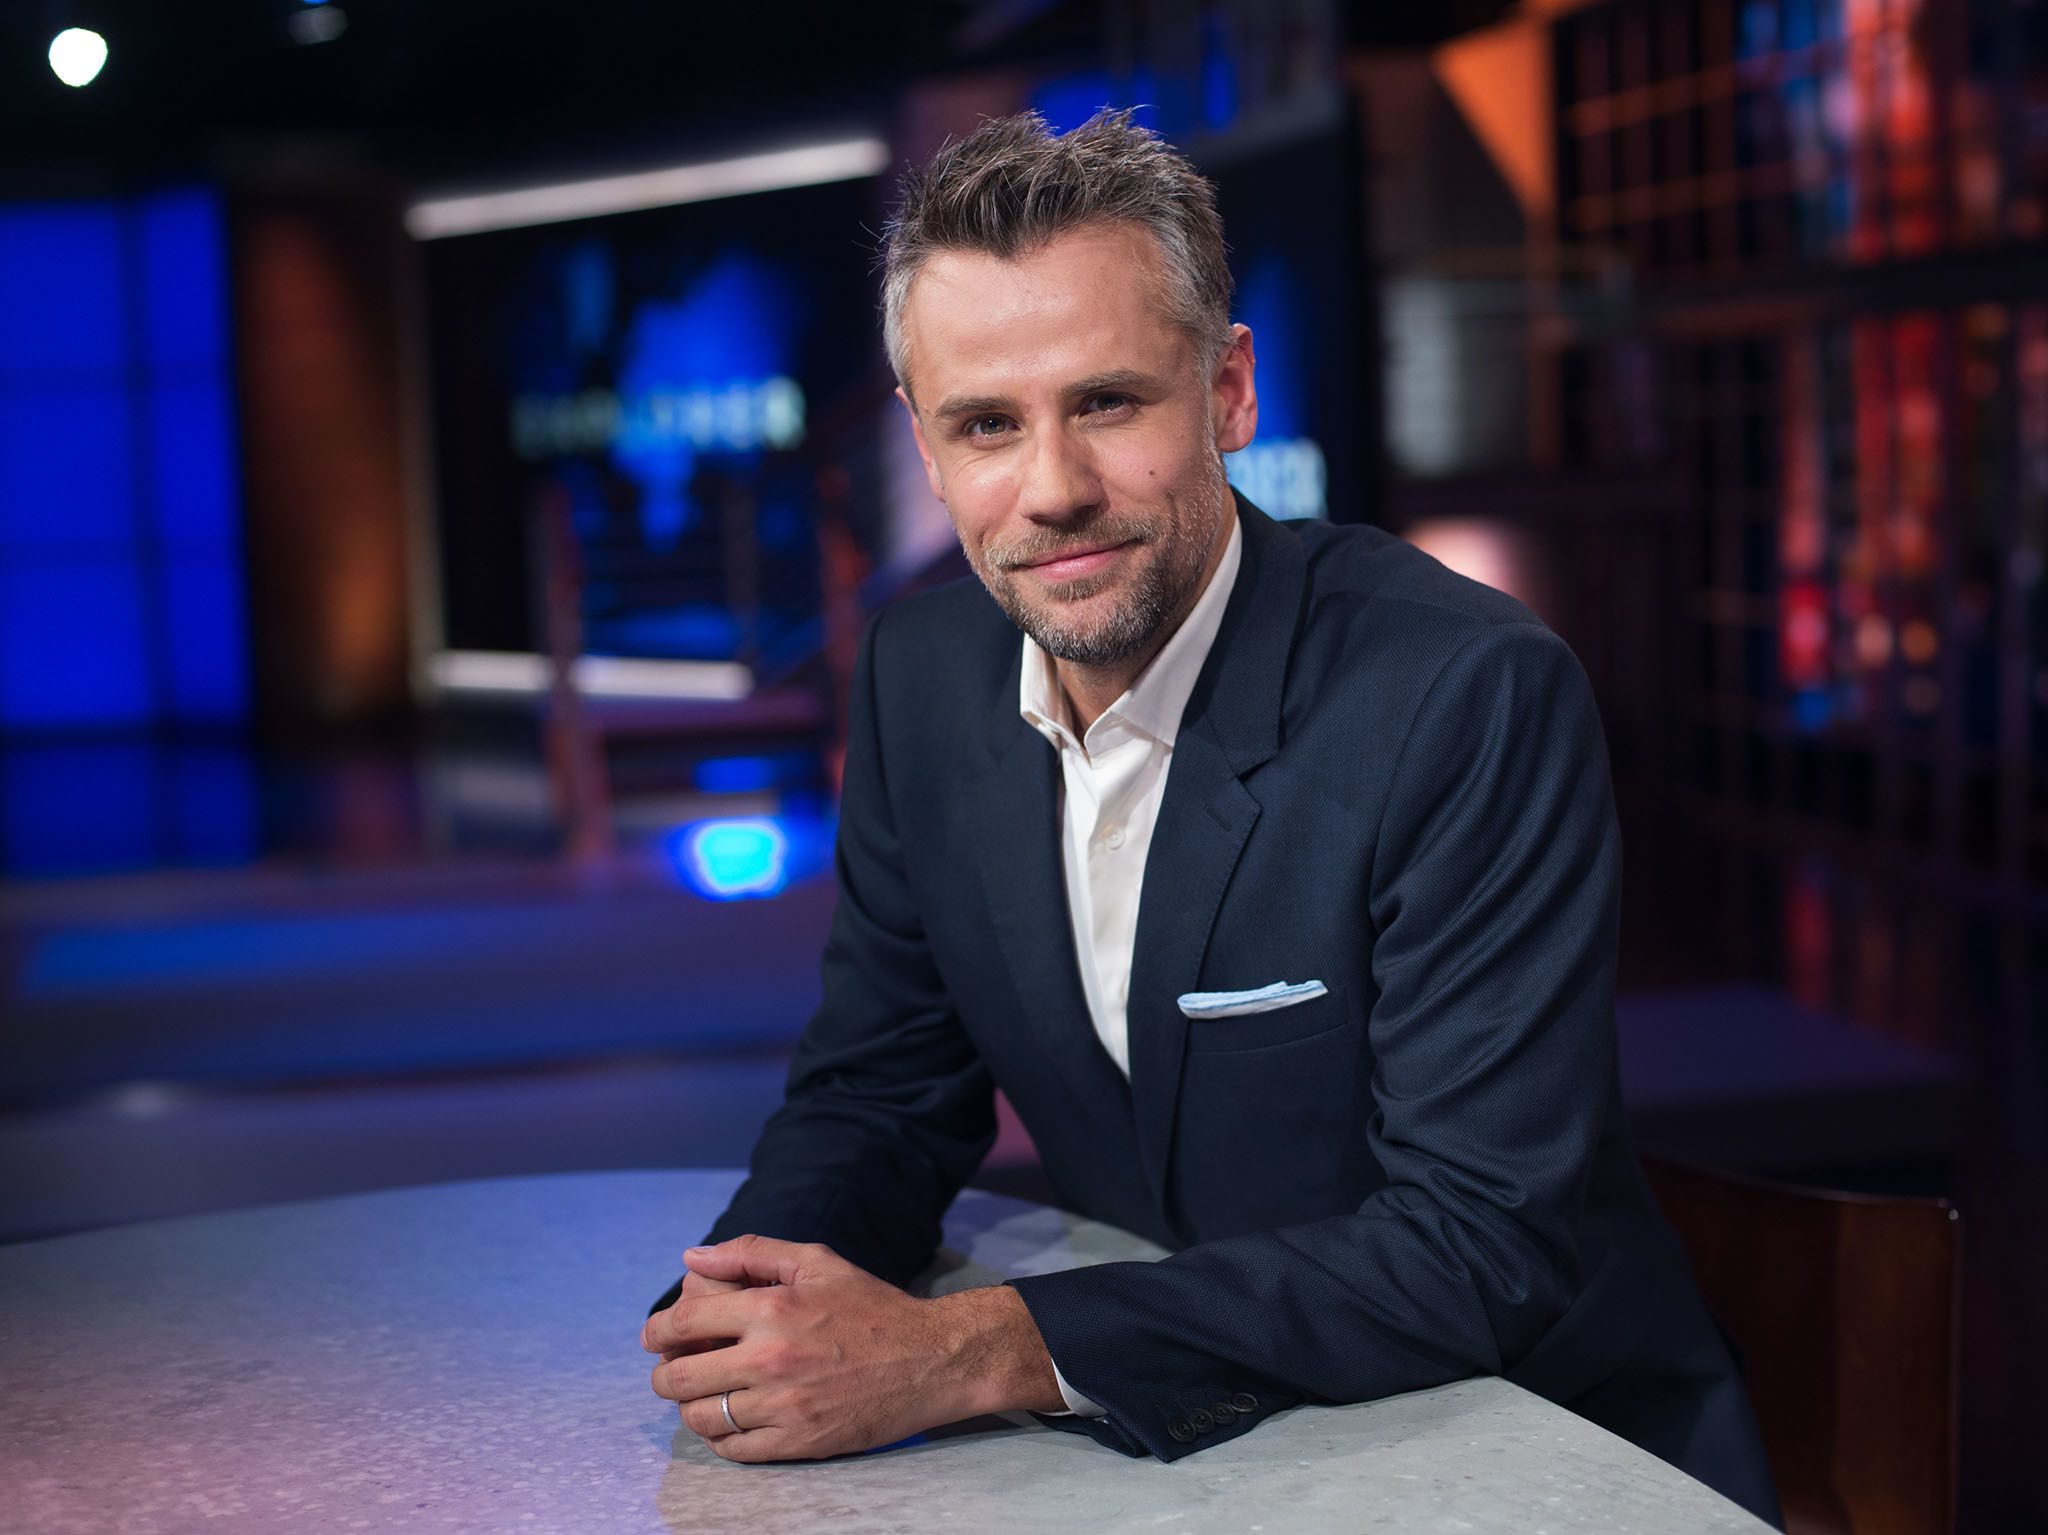 Richard Bacon presentador del programa EXPLORER de National Geographic. [Foto del día - enero 2017]